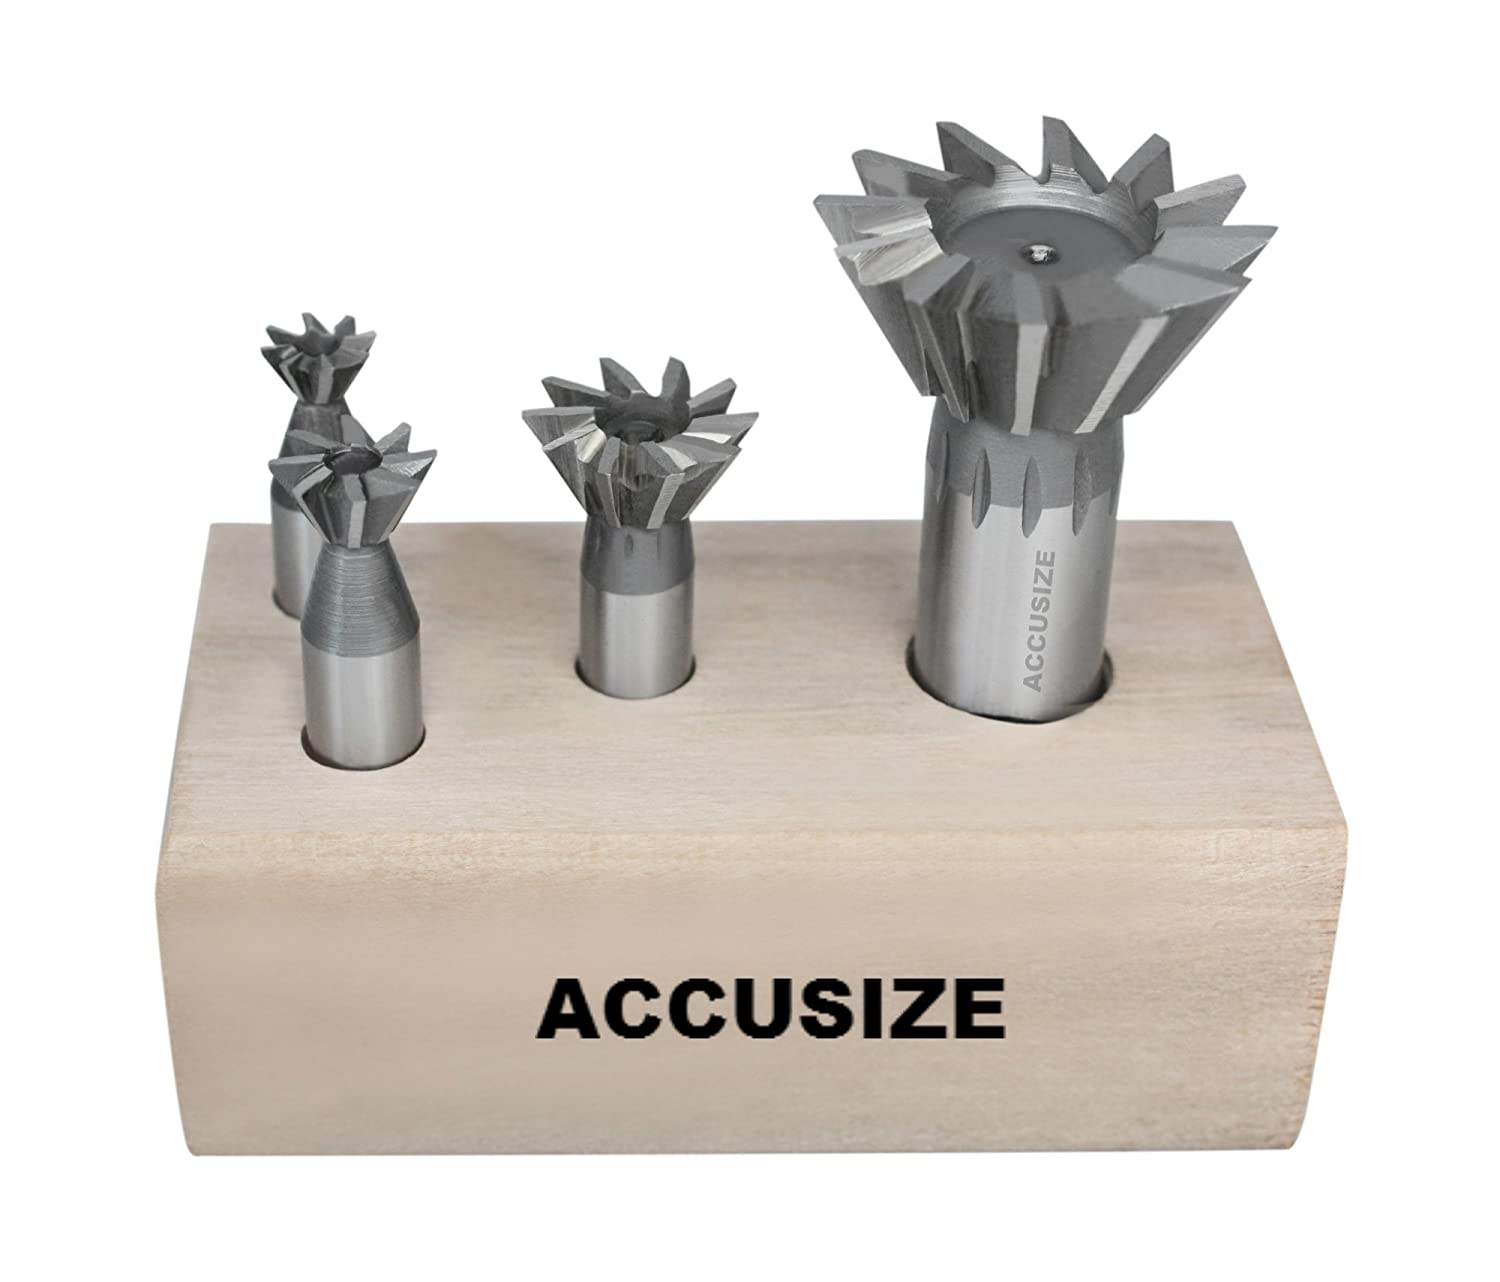 Right Hand Weldon Shank Dovetail Angular Cutters Accusize Industrial Tools 4 Pc 60 Degree H.S.S 4400-6206